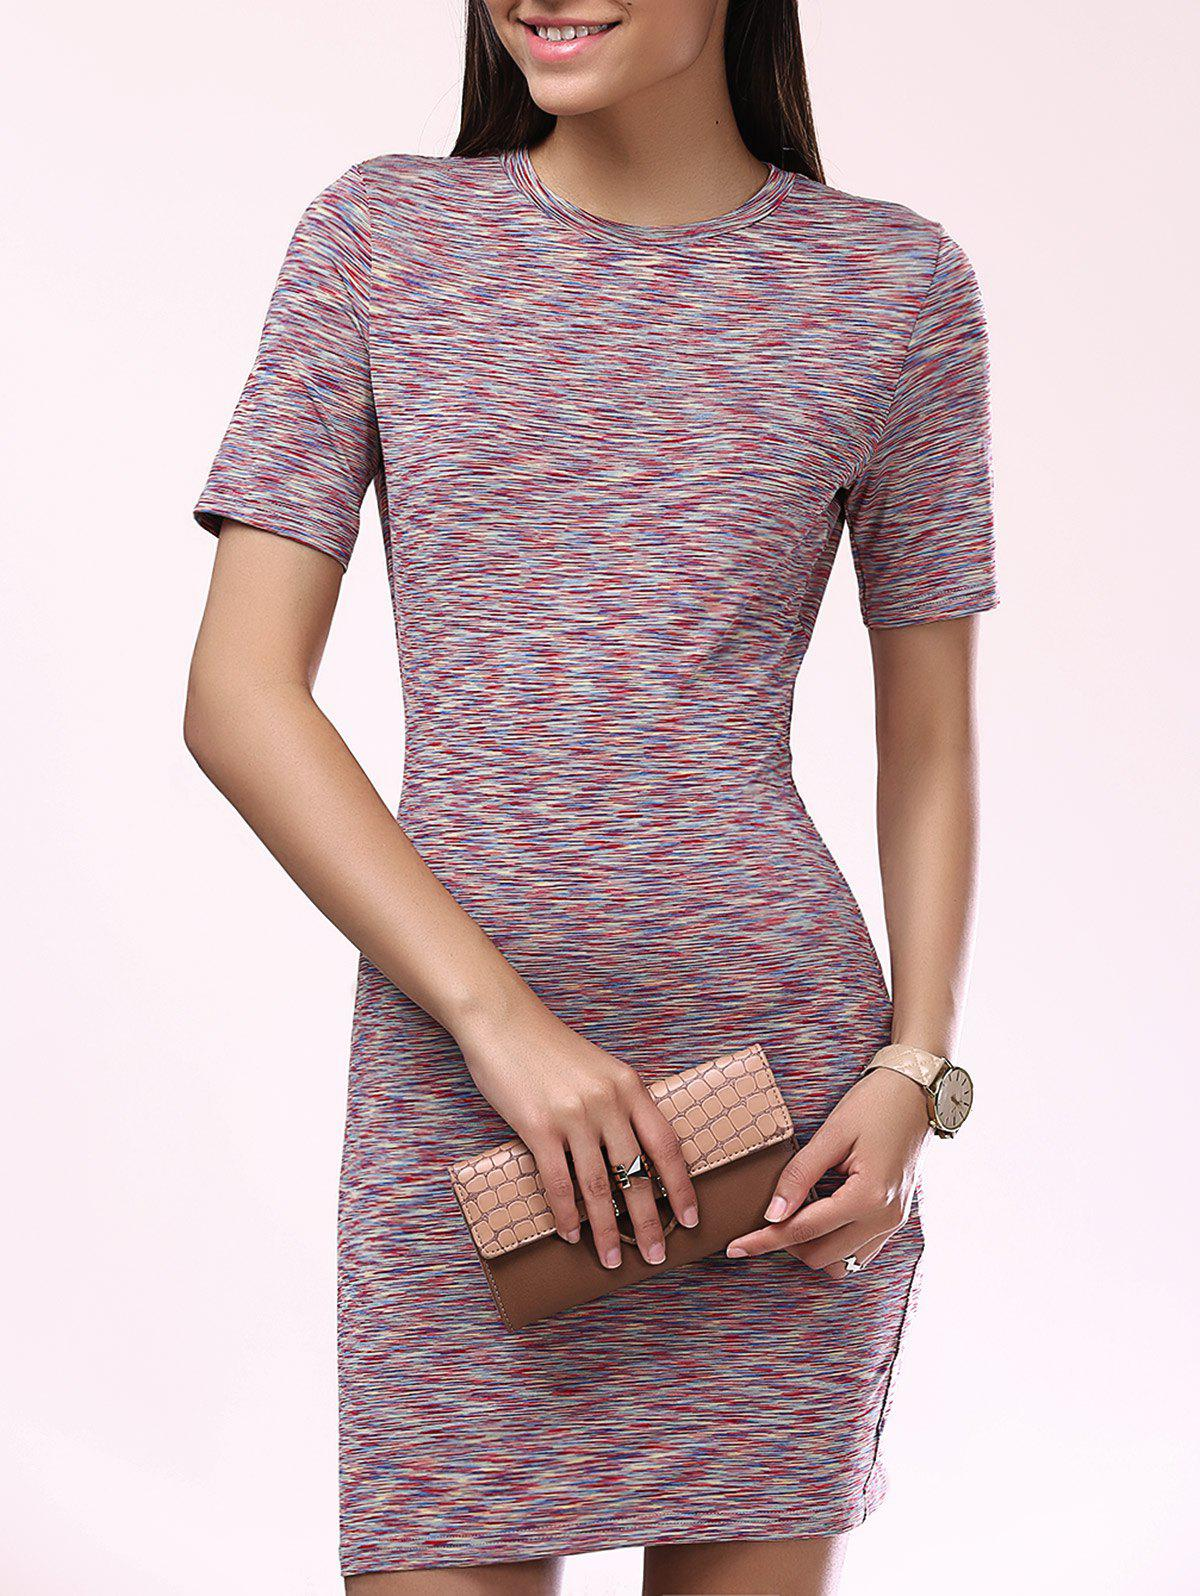 Fashionable Scoop Neck Slim Short Sleeves Dress For Women - COLORMIX L